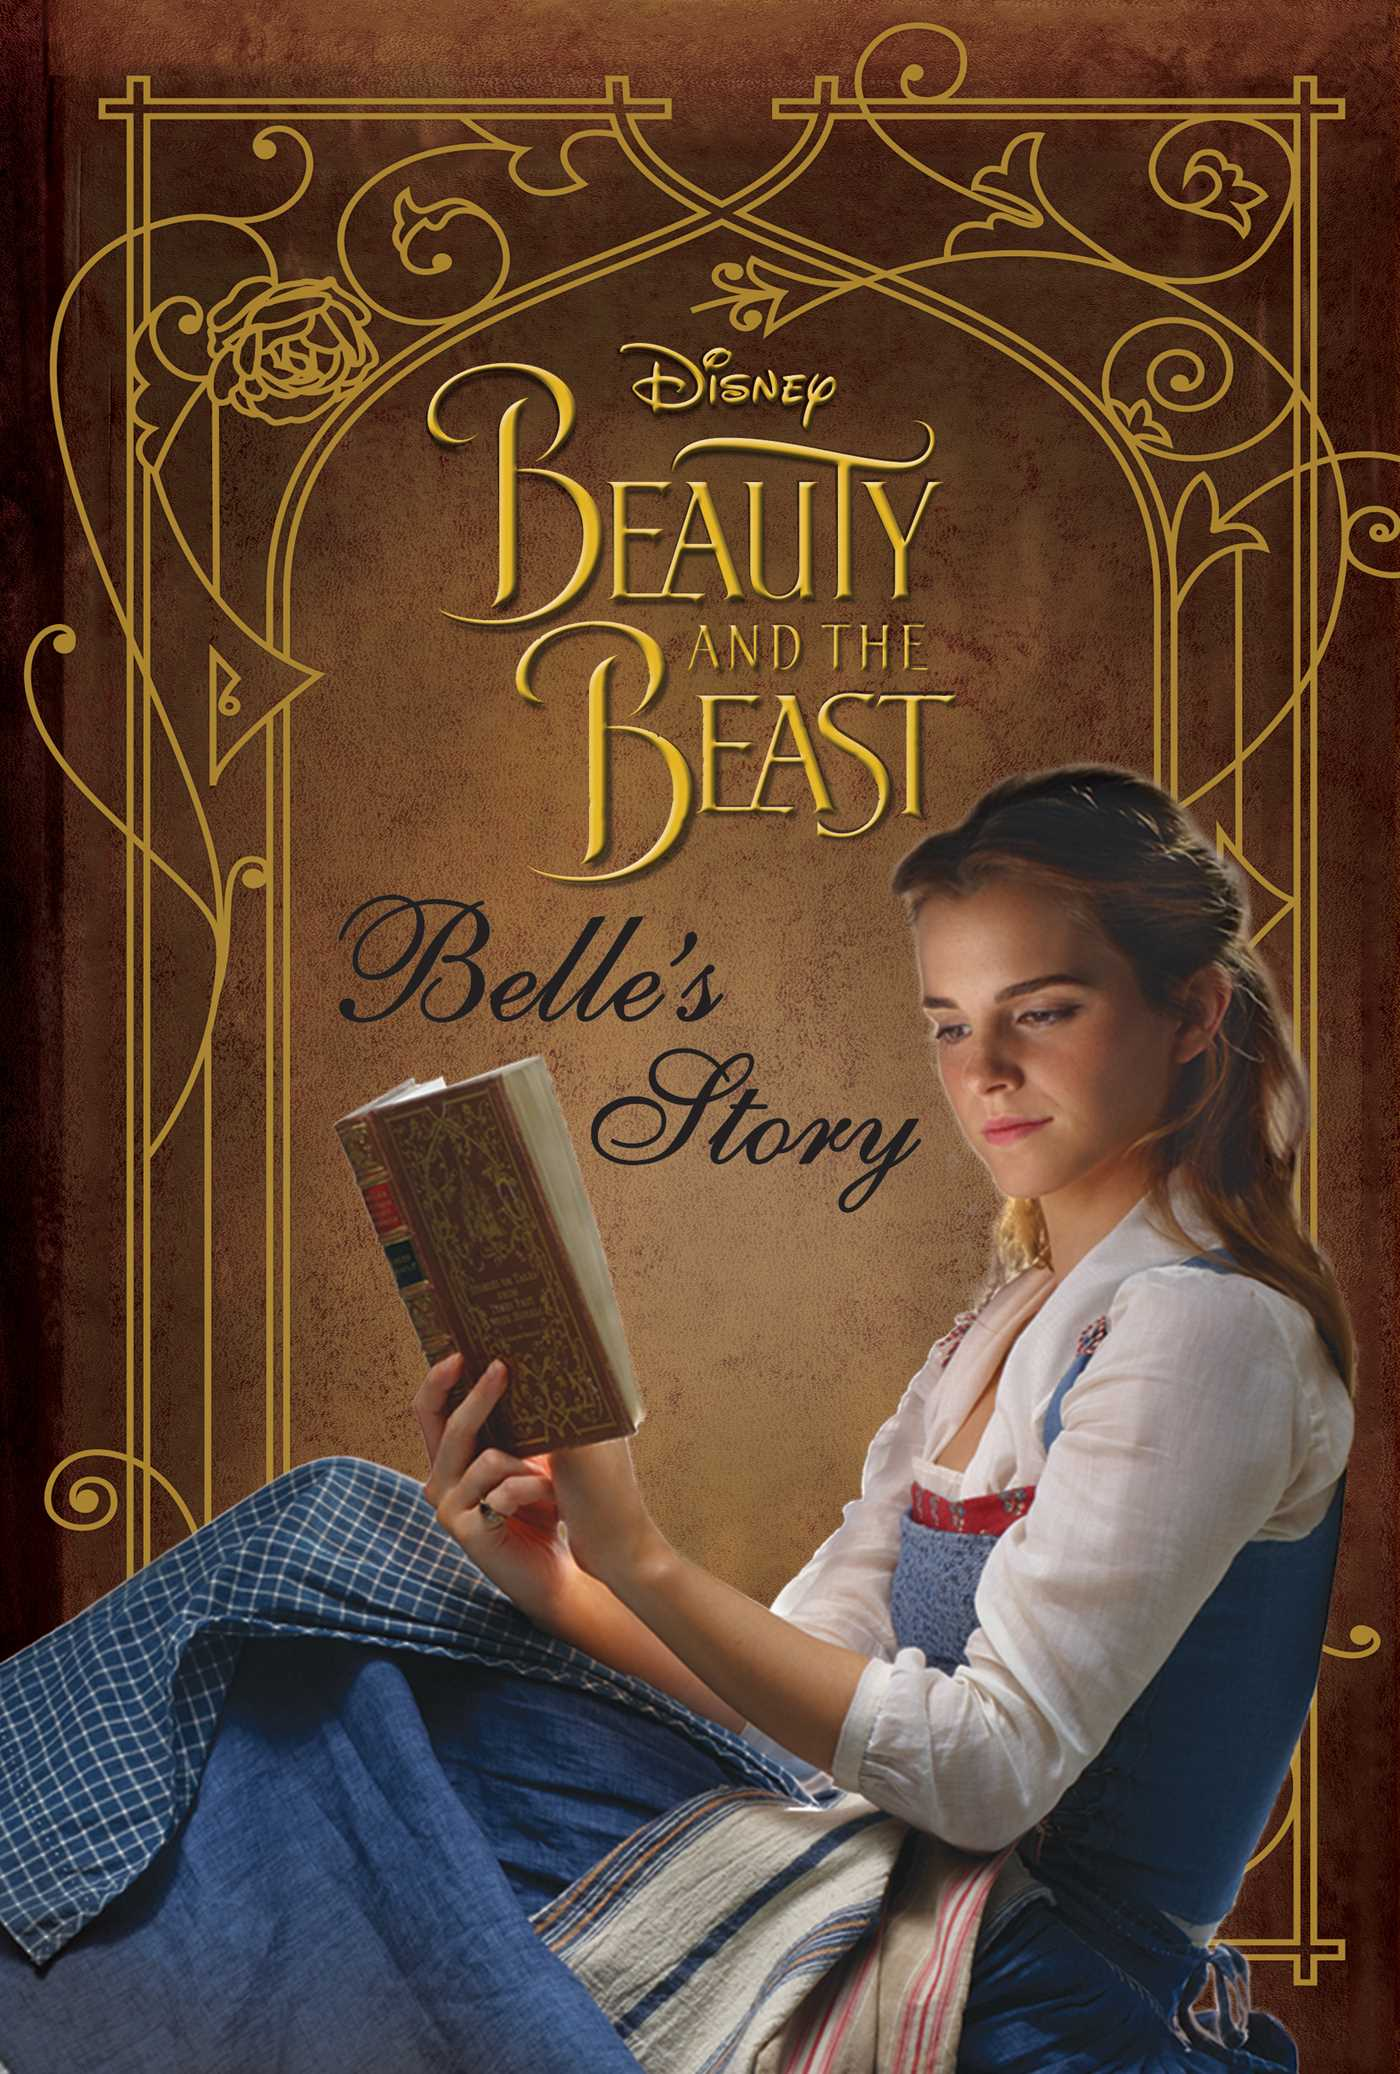 Disney Beauty And The Beast Belle S Story